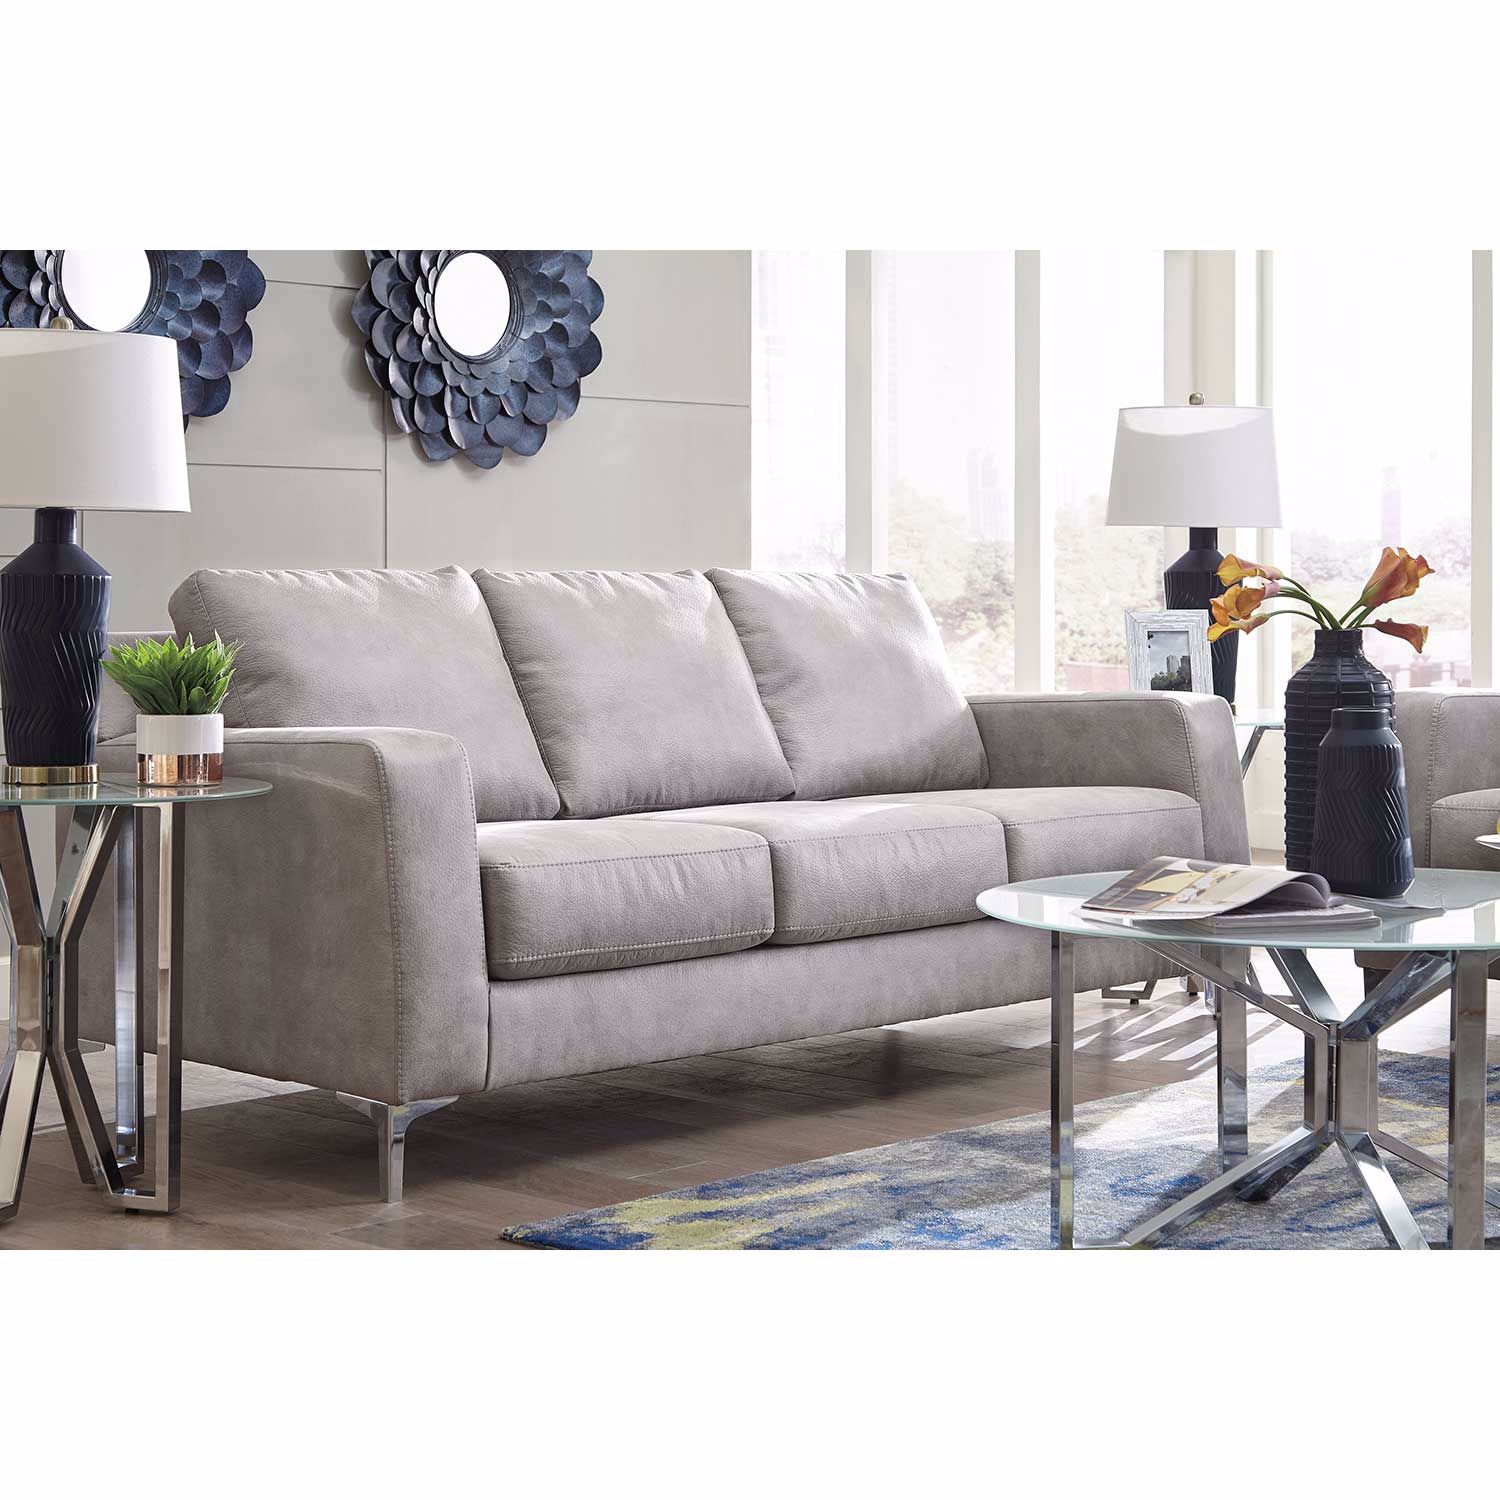 Picture of Ryler Steel Ottoman